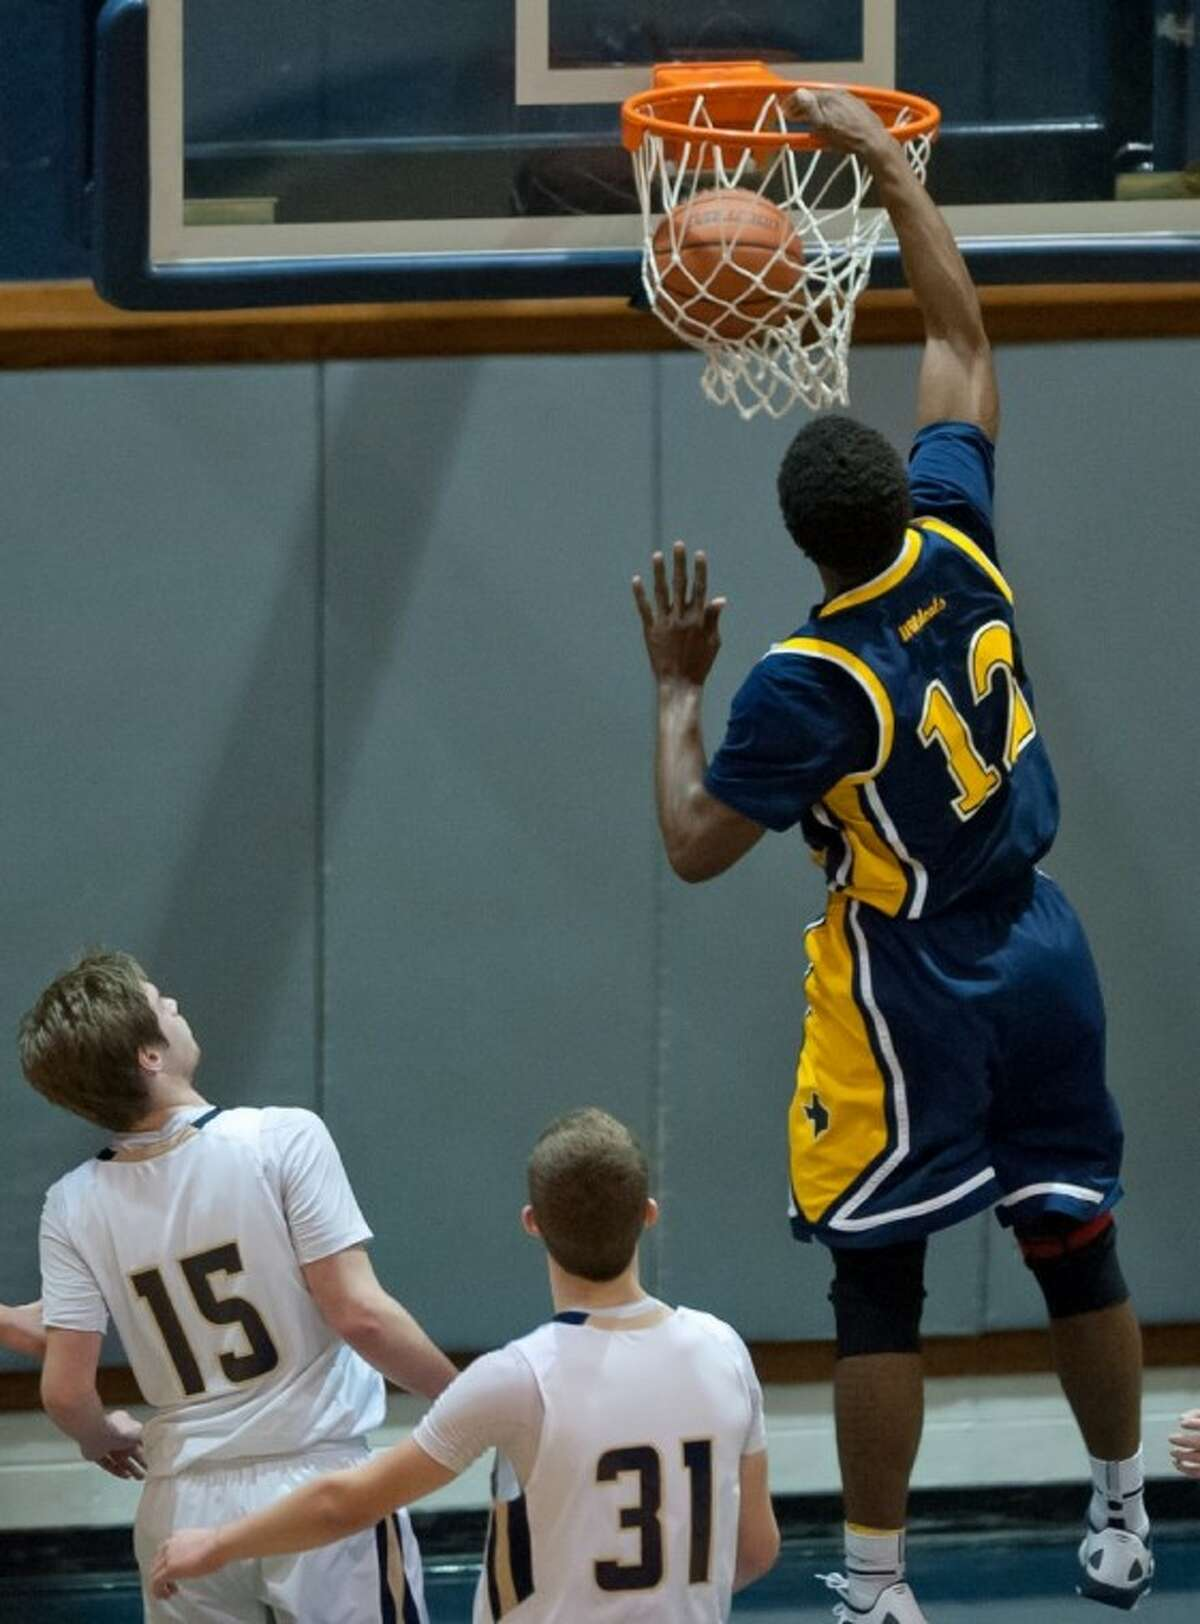 Delvin Dickerson pounds home two of his game-high 18 points as Westbury Christian defeated Second Baptist 70-38.